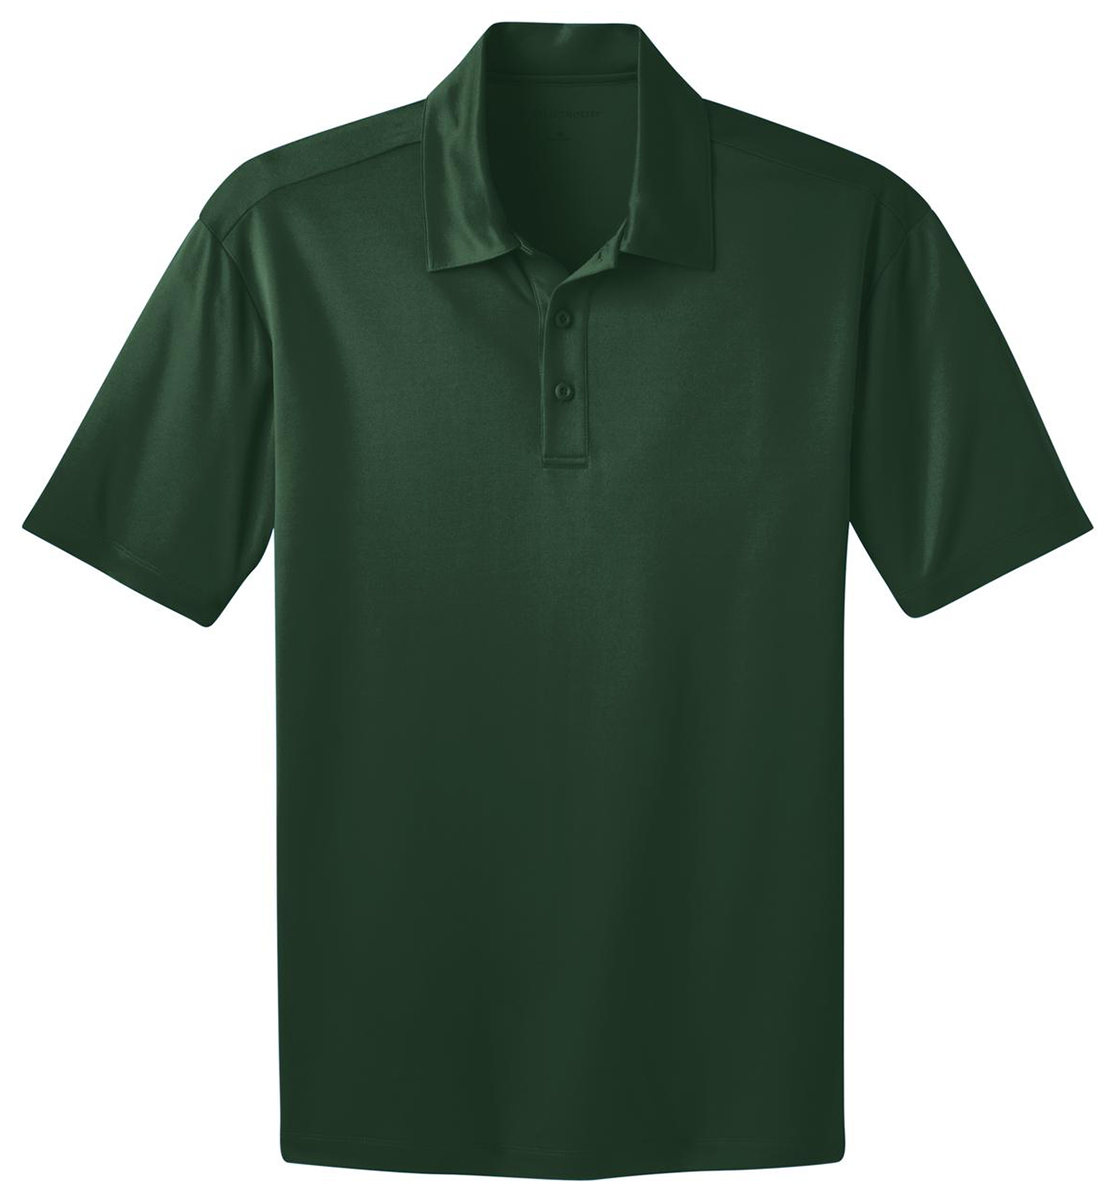 Port authority tlk540 mens tall silk touch dri fit polo for Mens silk shirts amazon